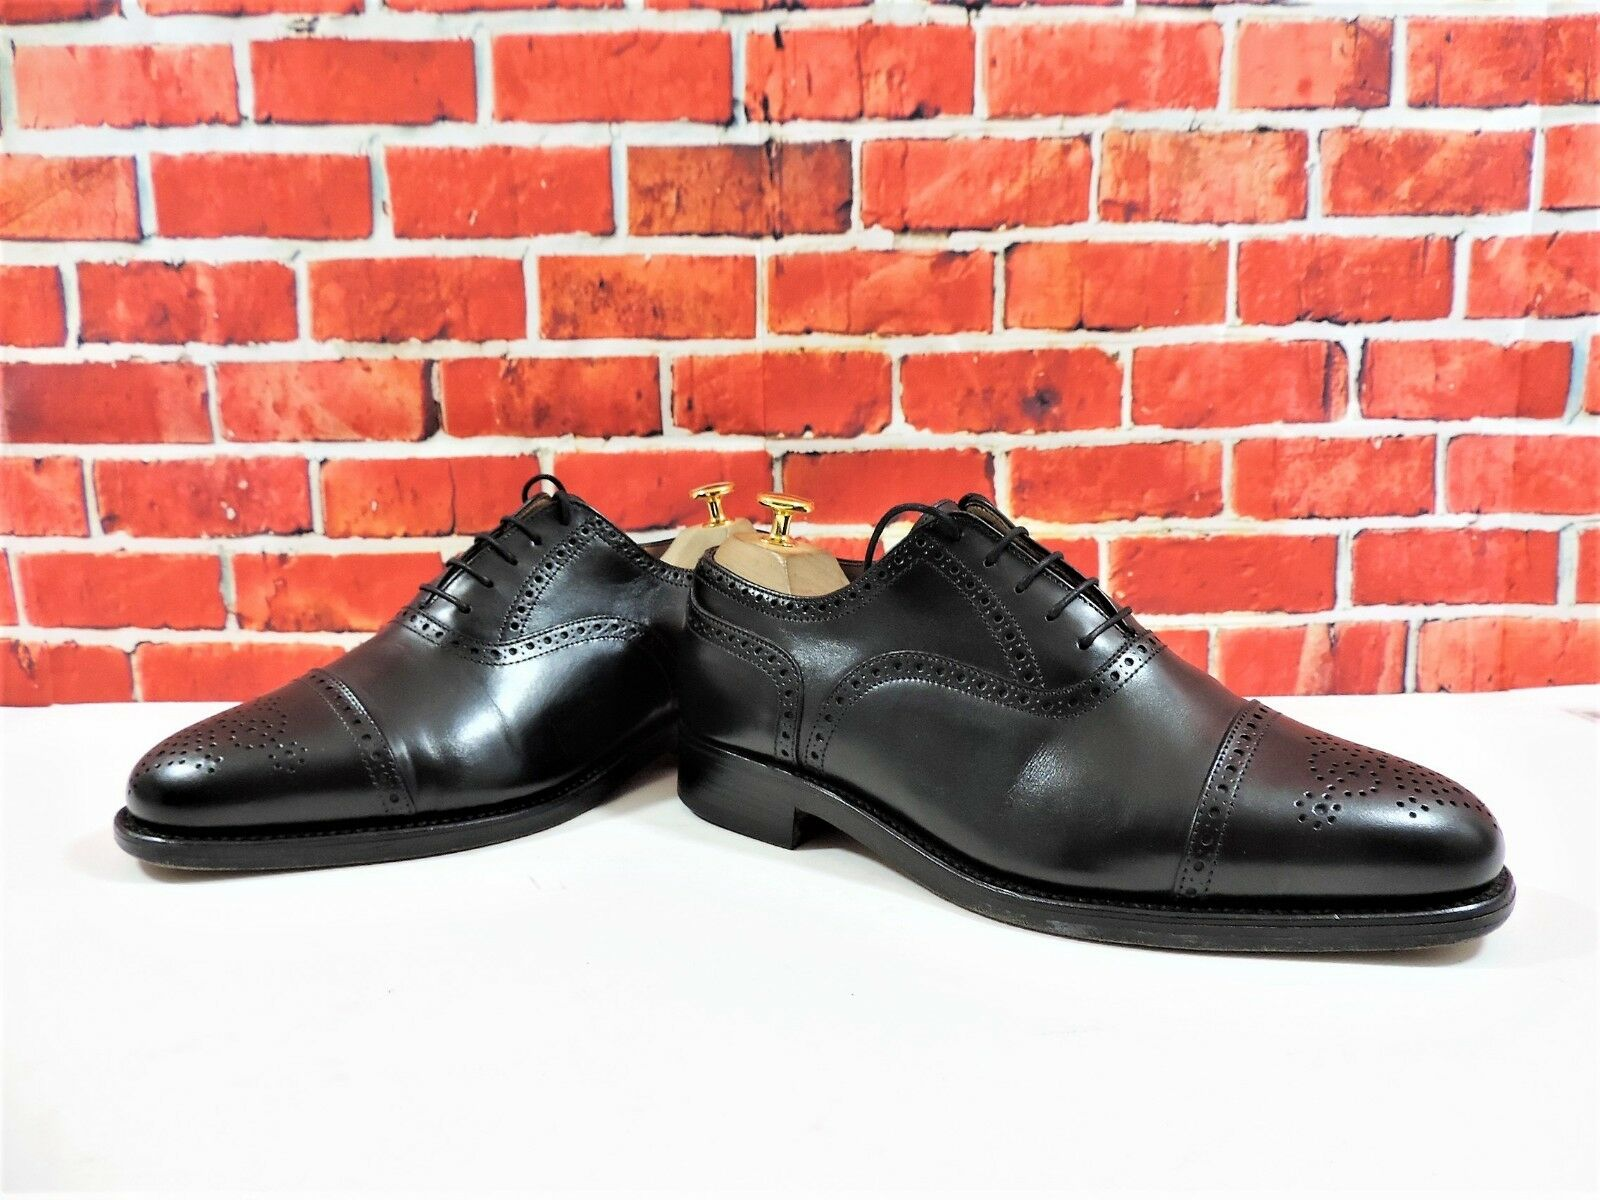 Alfrot SSilber Brogues UK 7.5 US 8.5 8.5 8.5 EU 41.5 FX Very minor use Good for Church 929a64